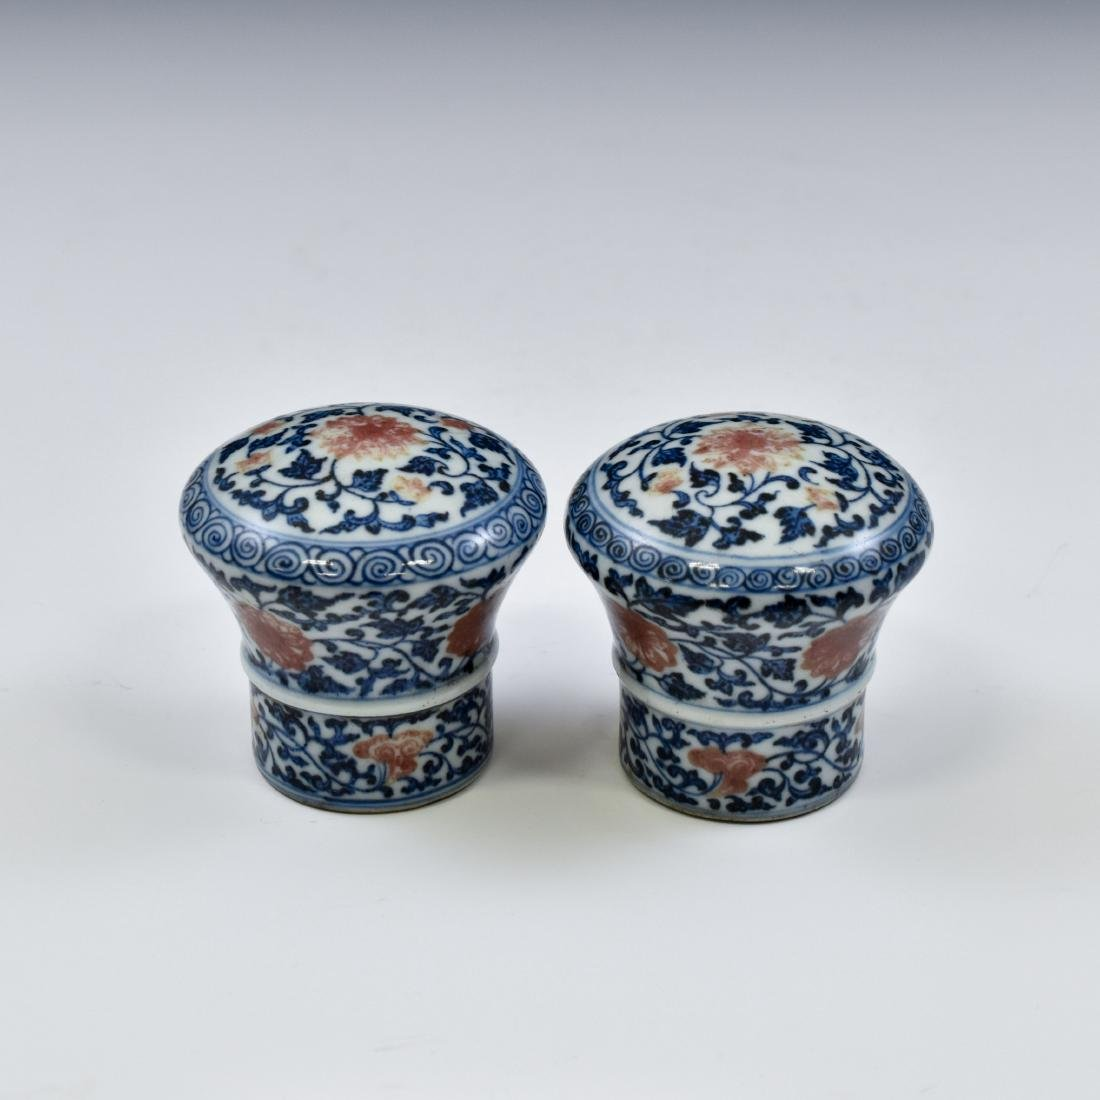 17TH C PAIR OF PORCELAIN SCROLL KNOBS IN FLORAL MOTIF - 5